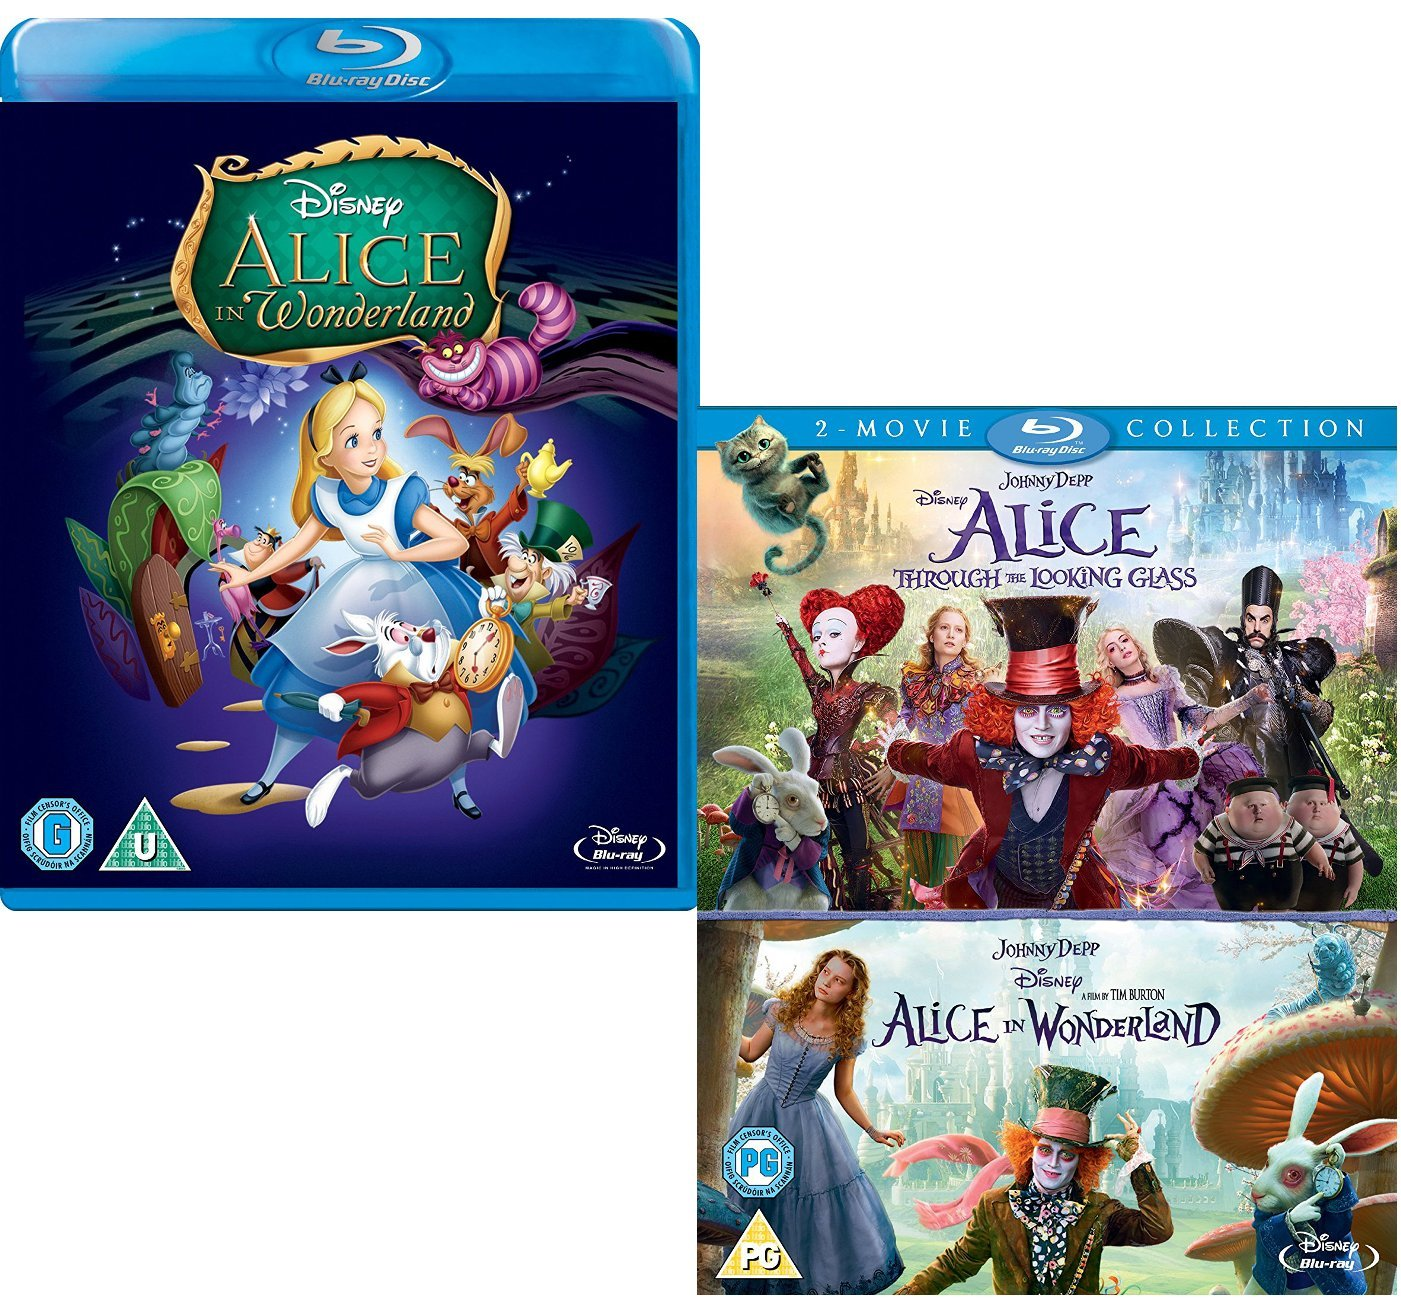 Alice In Wonderland (Animated) - Alice in Wonderland / .. Through The Looking Glass (Complete Collection Box-Set) - Walt Disney 2 Movie Bundling Blu-ray